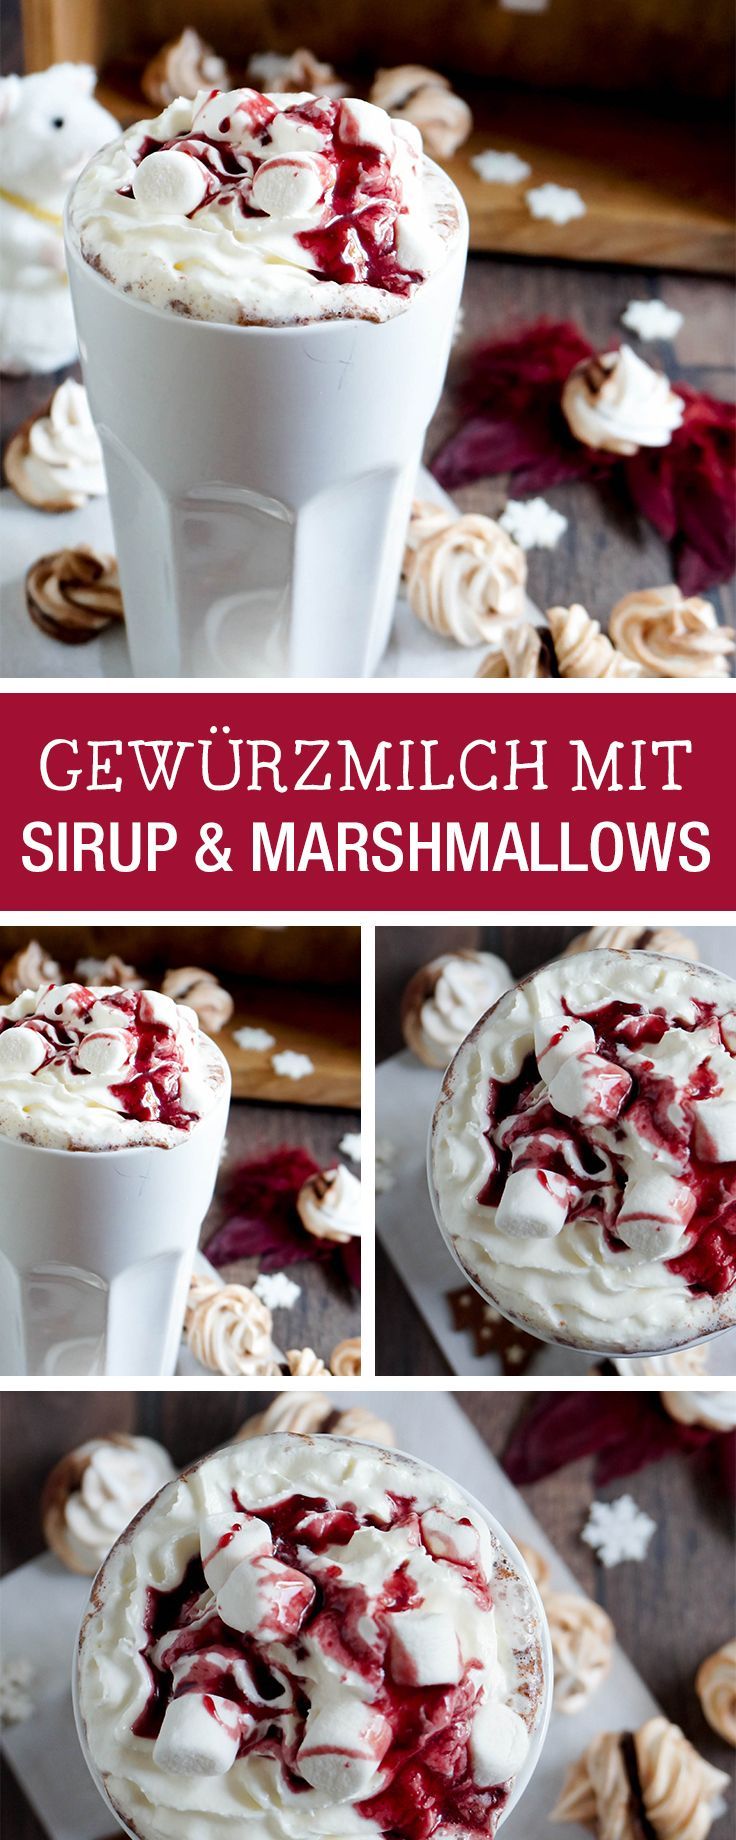 Perfekt für kalte Wintertage: Gewürzmilch mit Sirup und Marshmallows / christmas recipe for cold winter days: milk with sirup and marshmallows via DaWanda.com